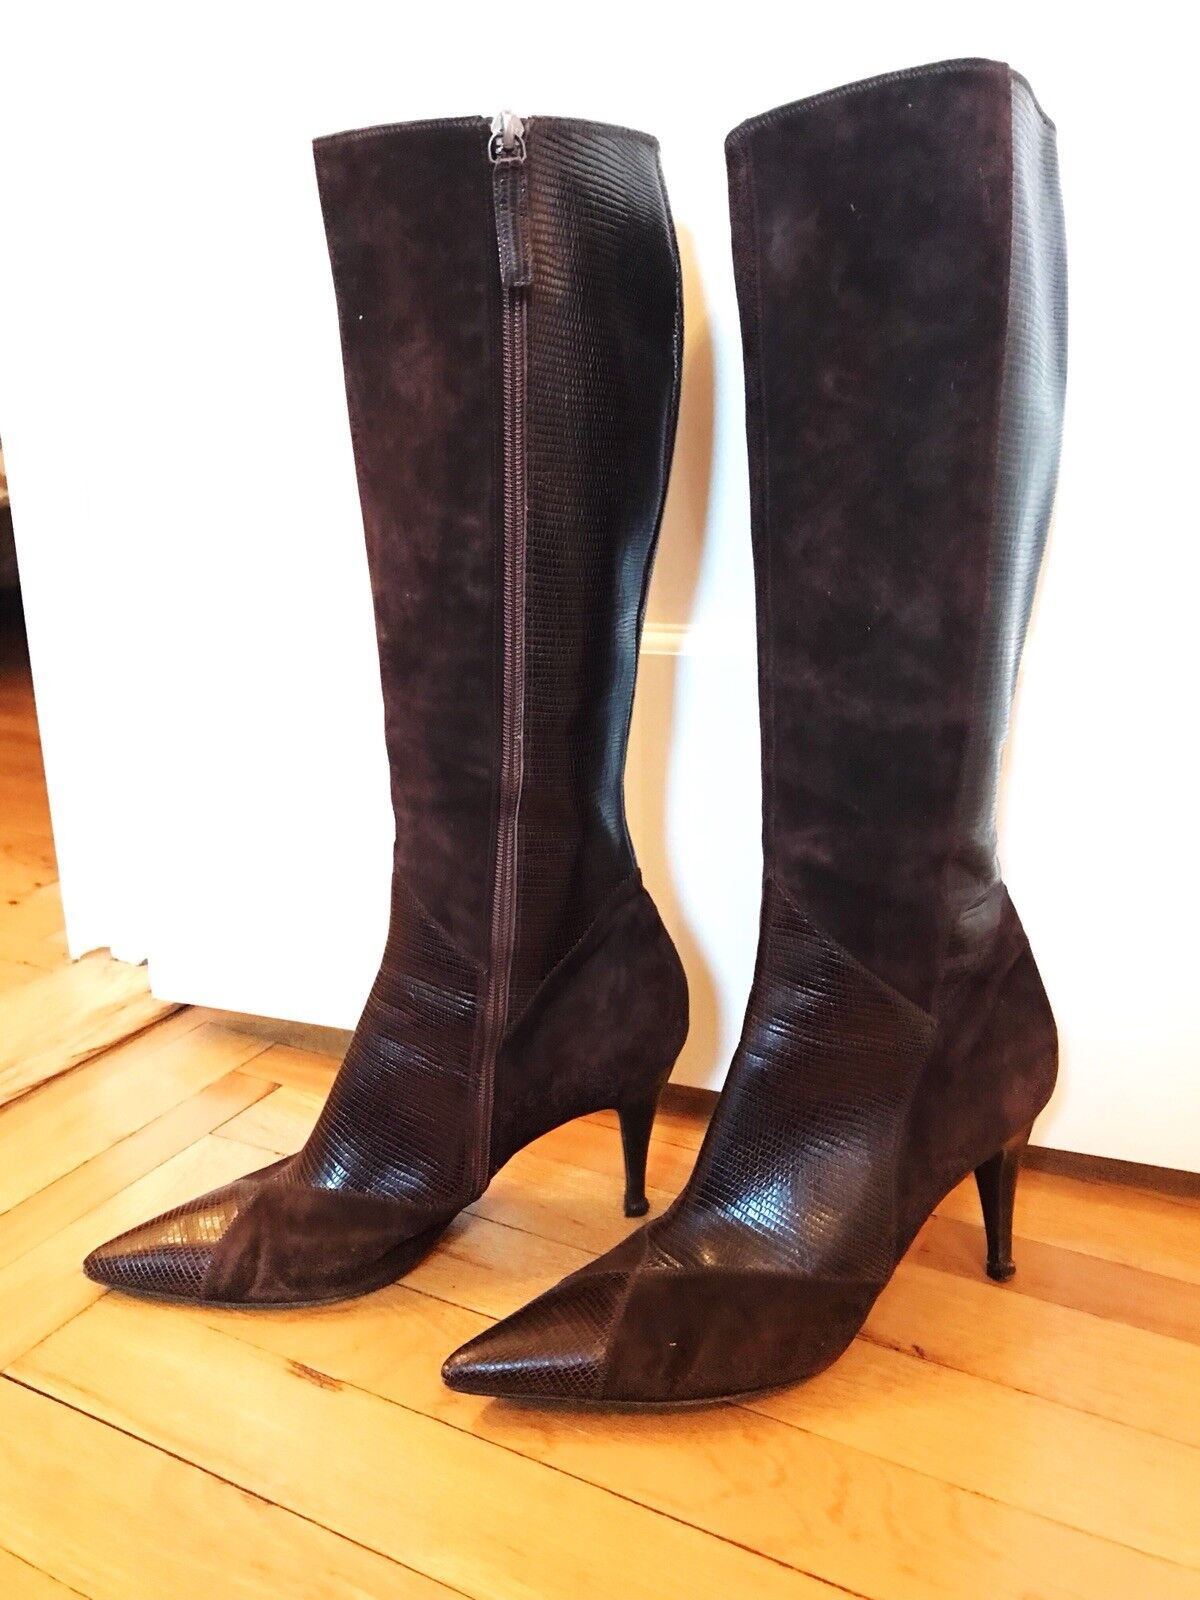 Hugo Boss Brown Suede & Leather Knee-High Boots SZ 40 10